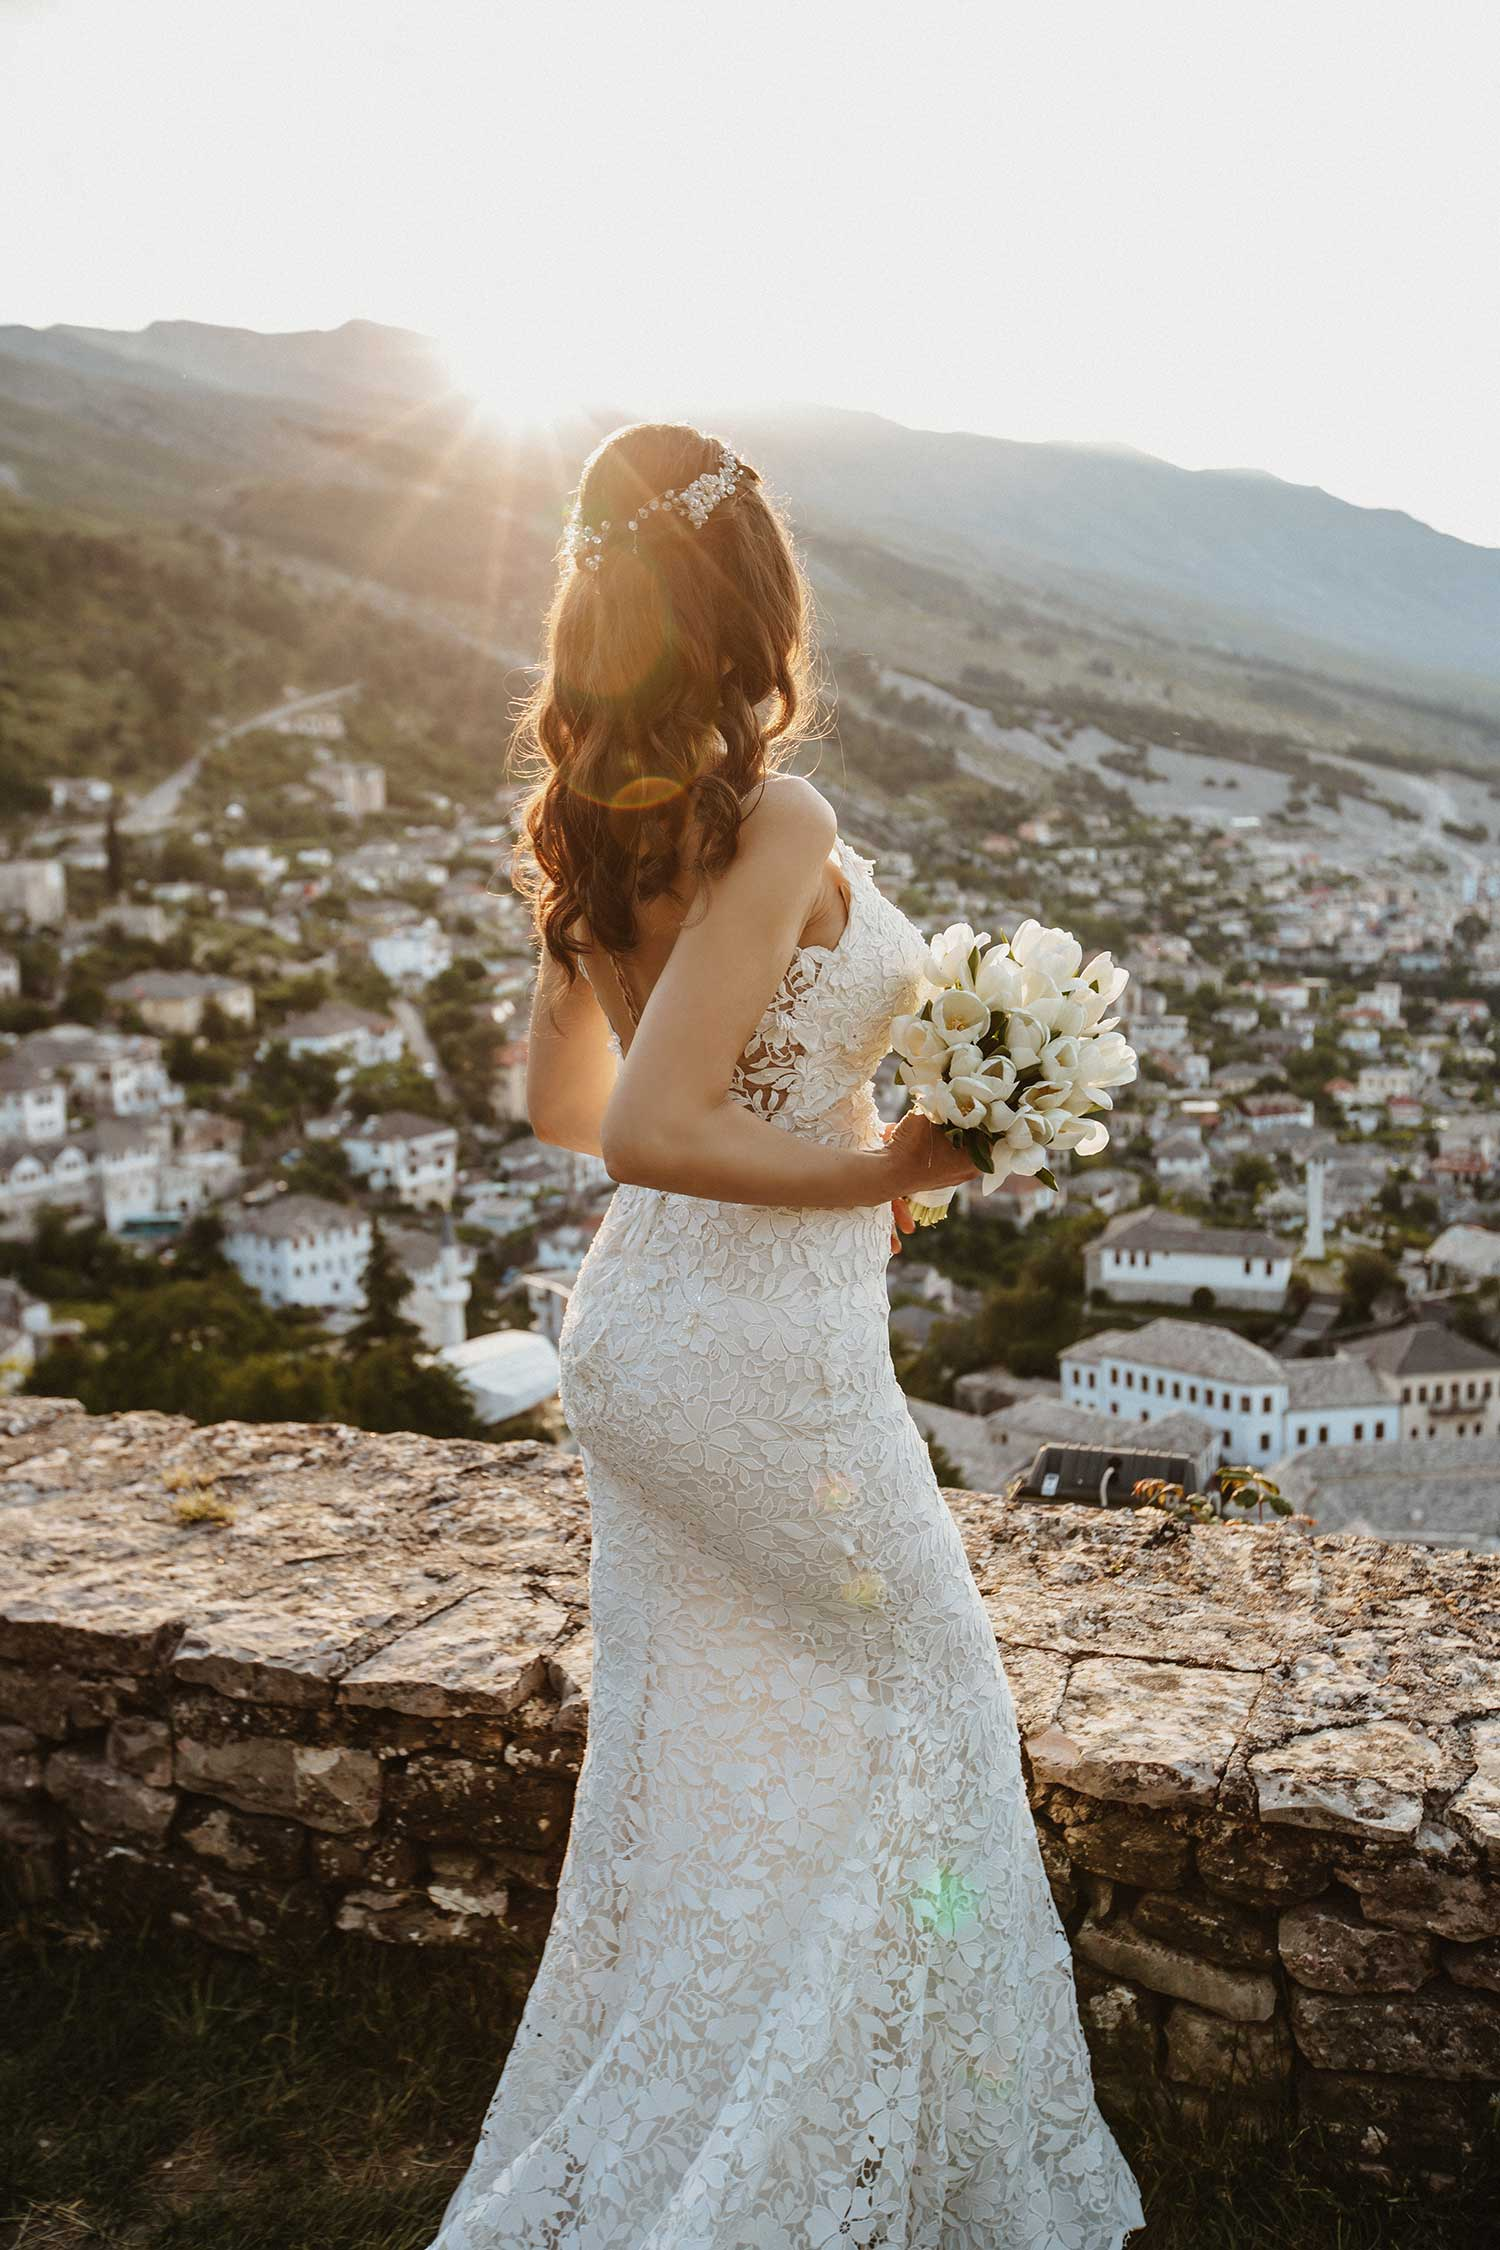 Sun light illuminating bride's wedding dress